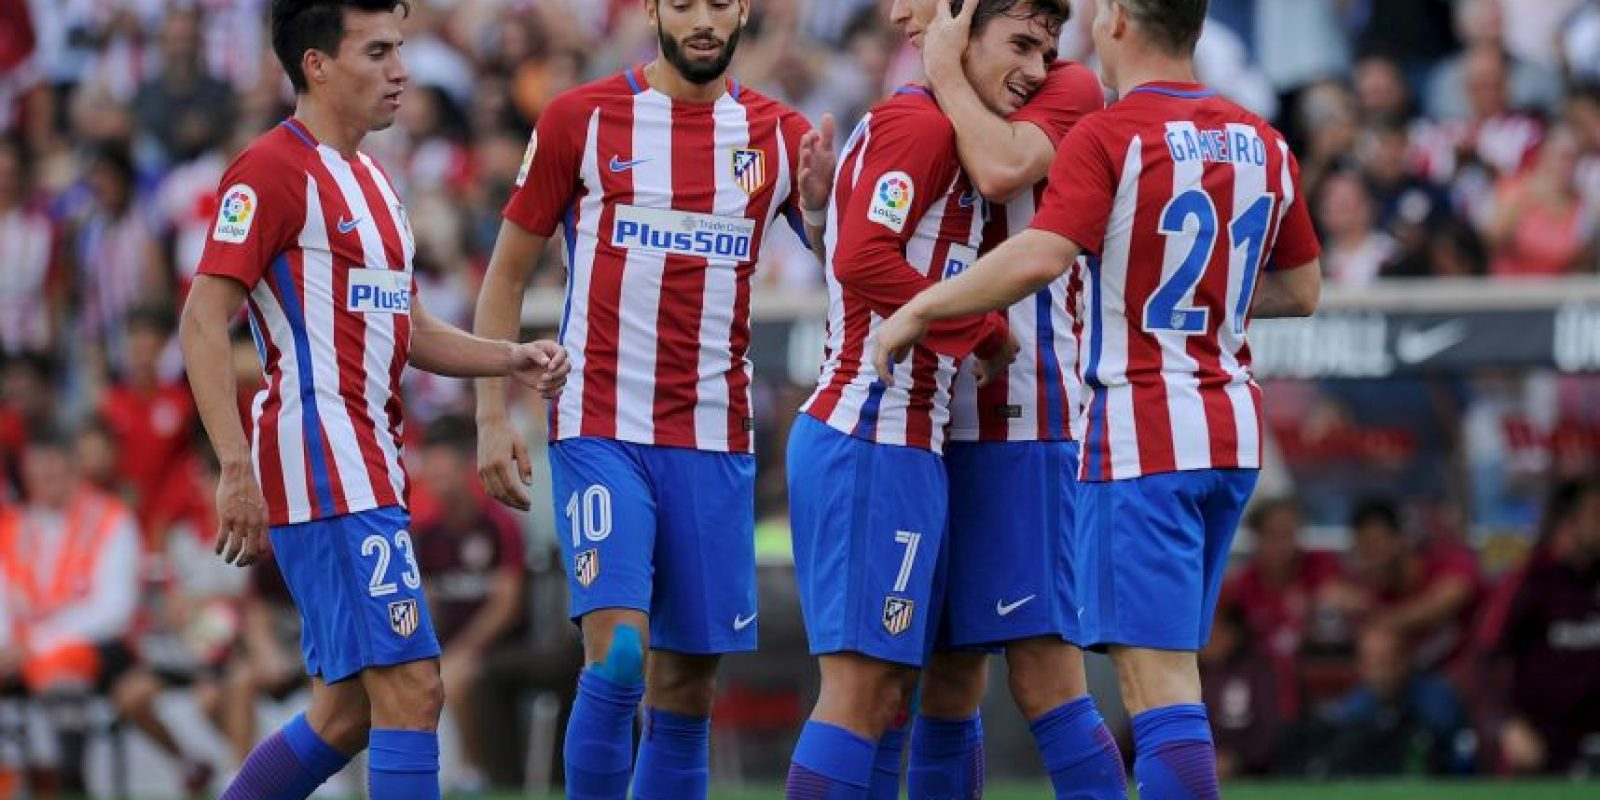 Futbolistas del Real Madrid y Atlético son señalados en escándalo sexual Foto: Getty Images